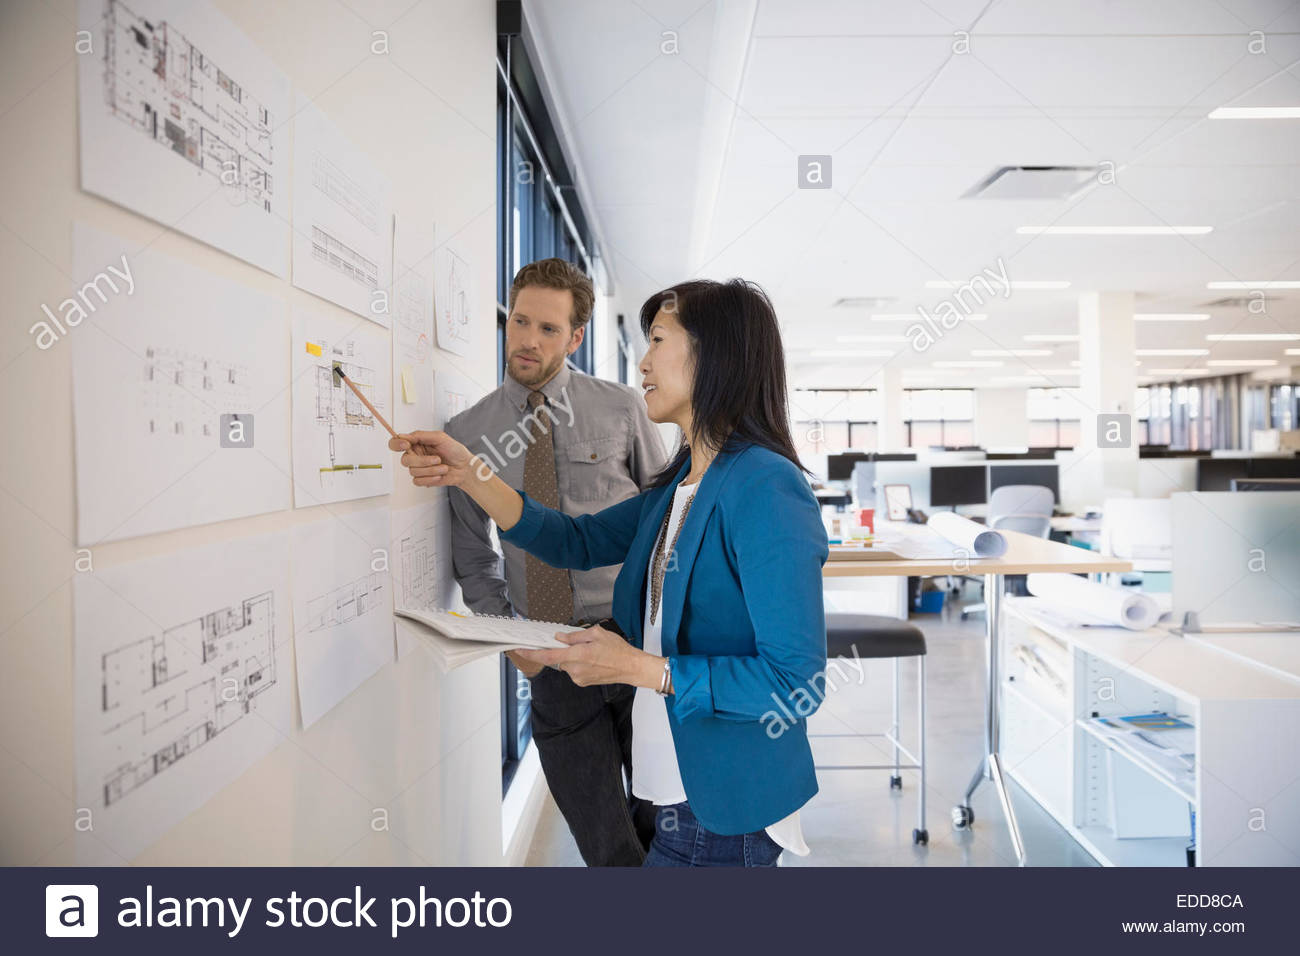 Architects discussing plans at wall - Stock Image